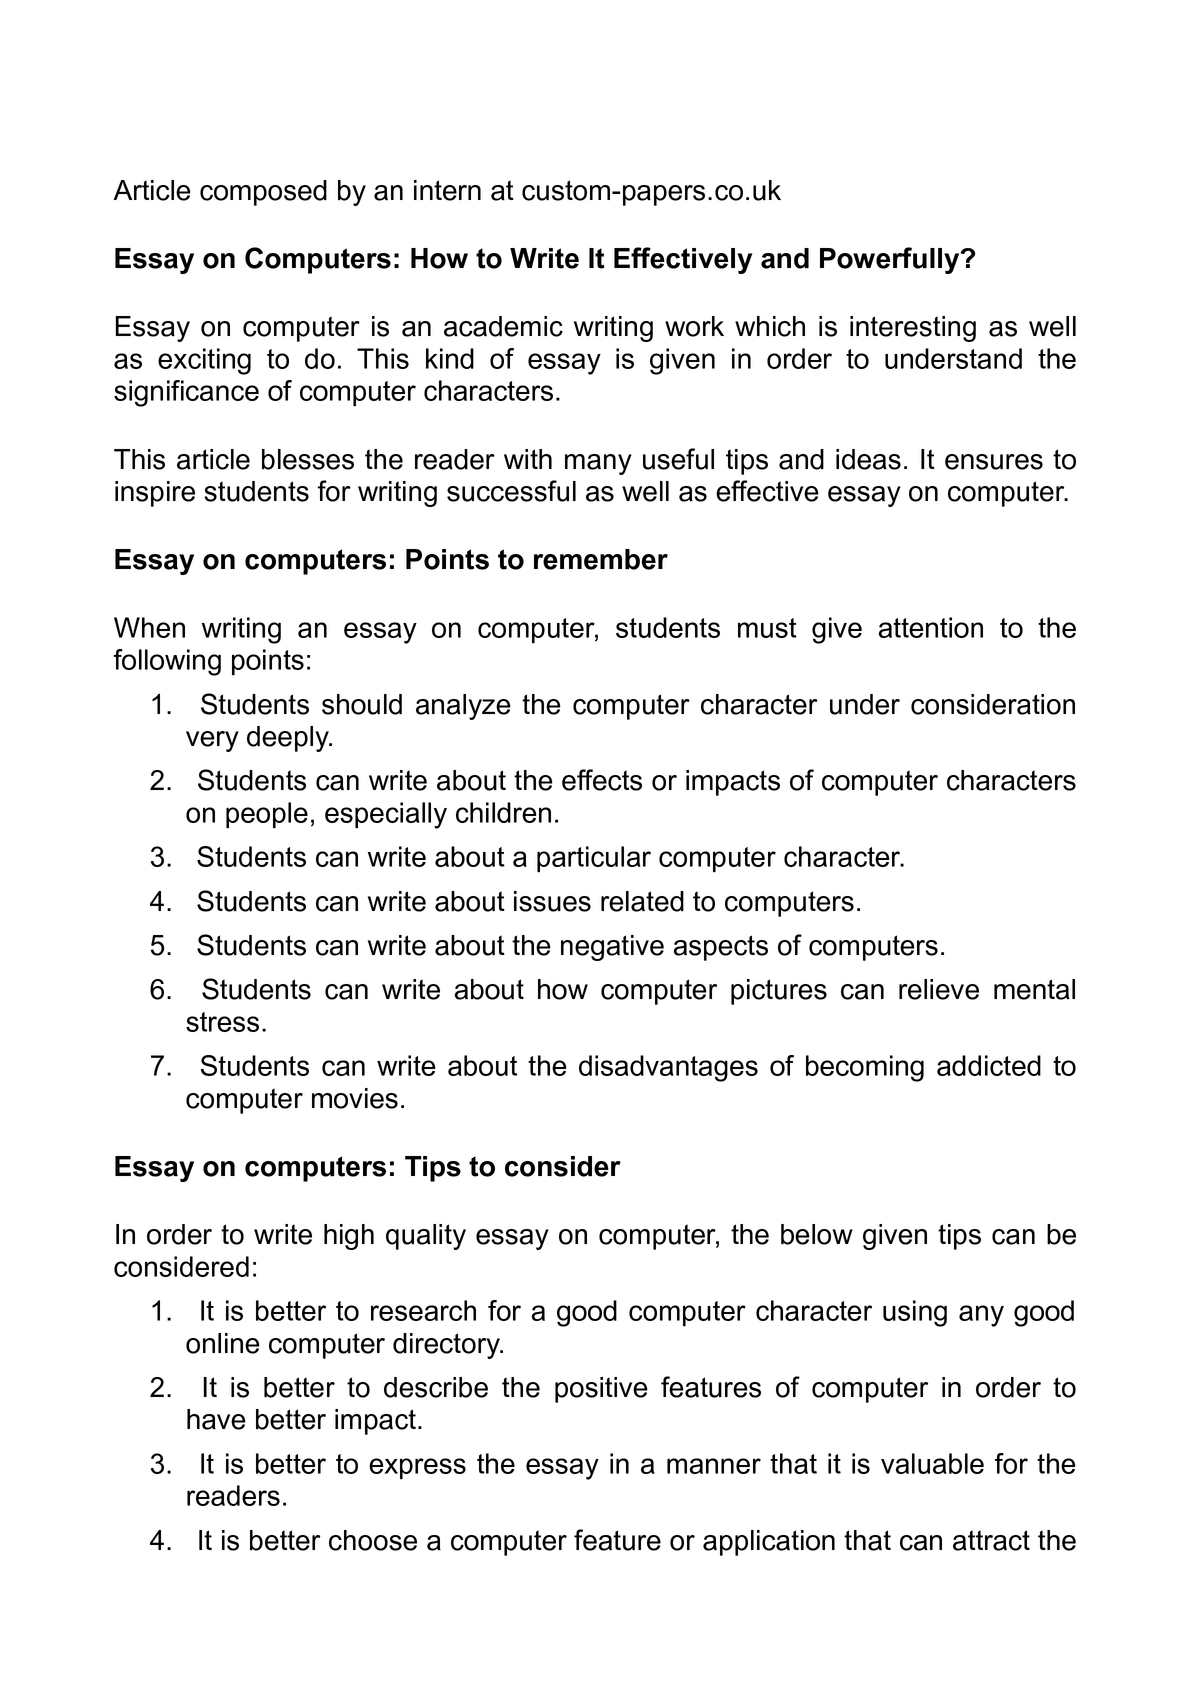 calamo   essay on computers how to write it effectively and  essay on computers how to write it effectively and powerfully